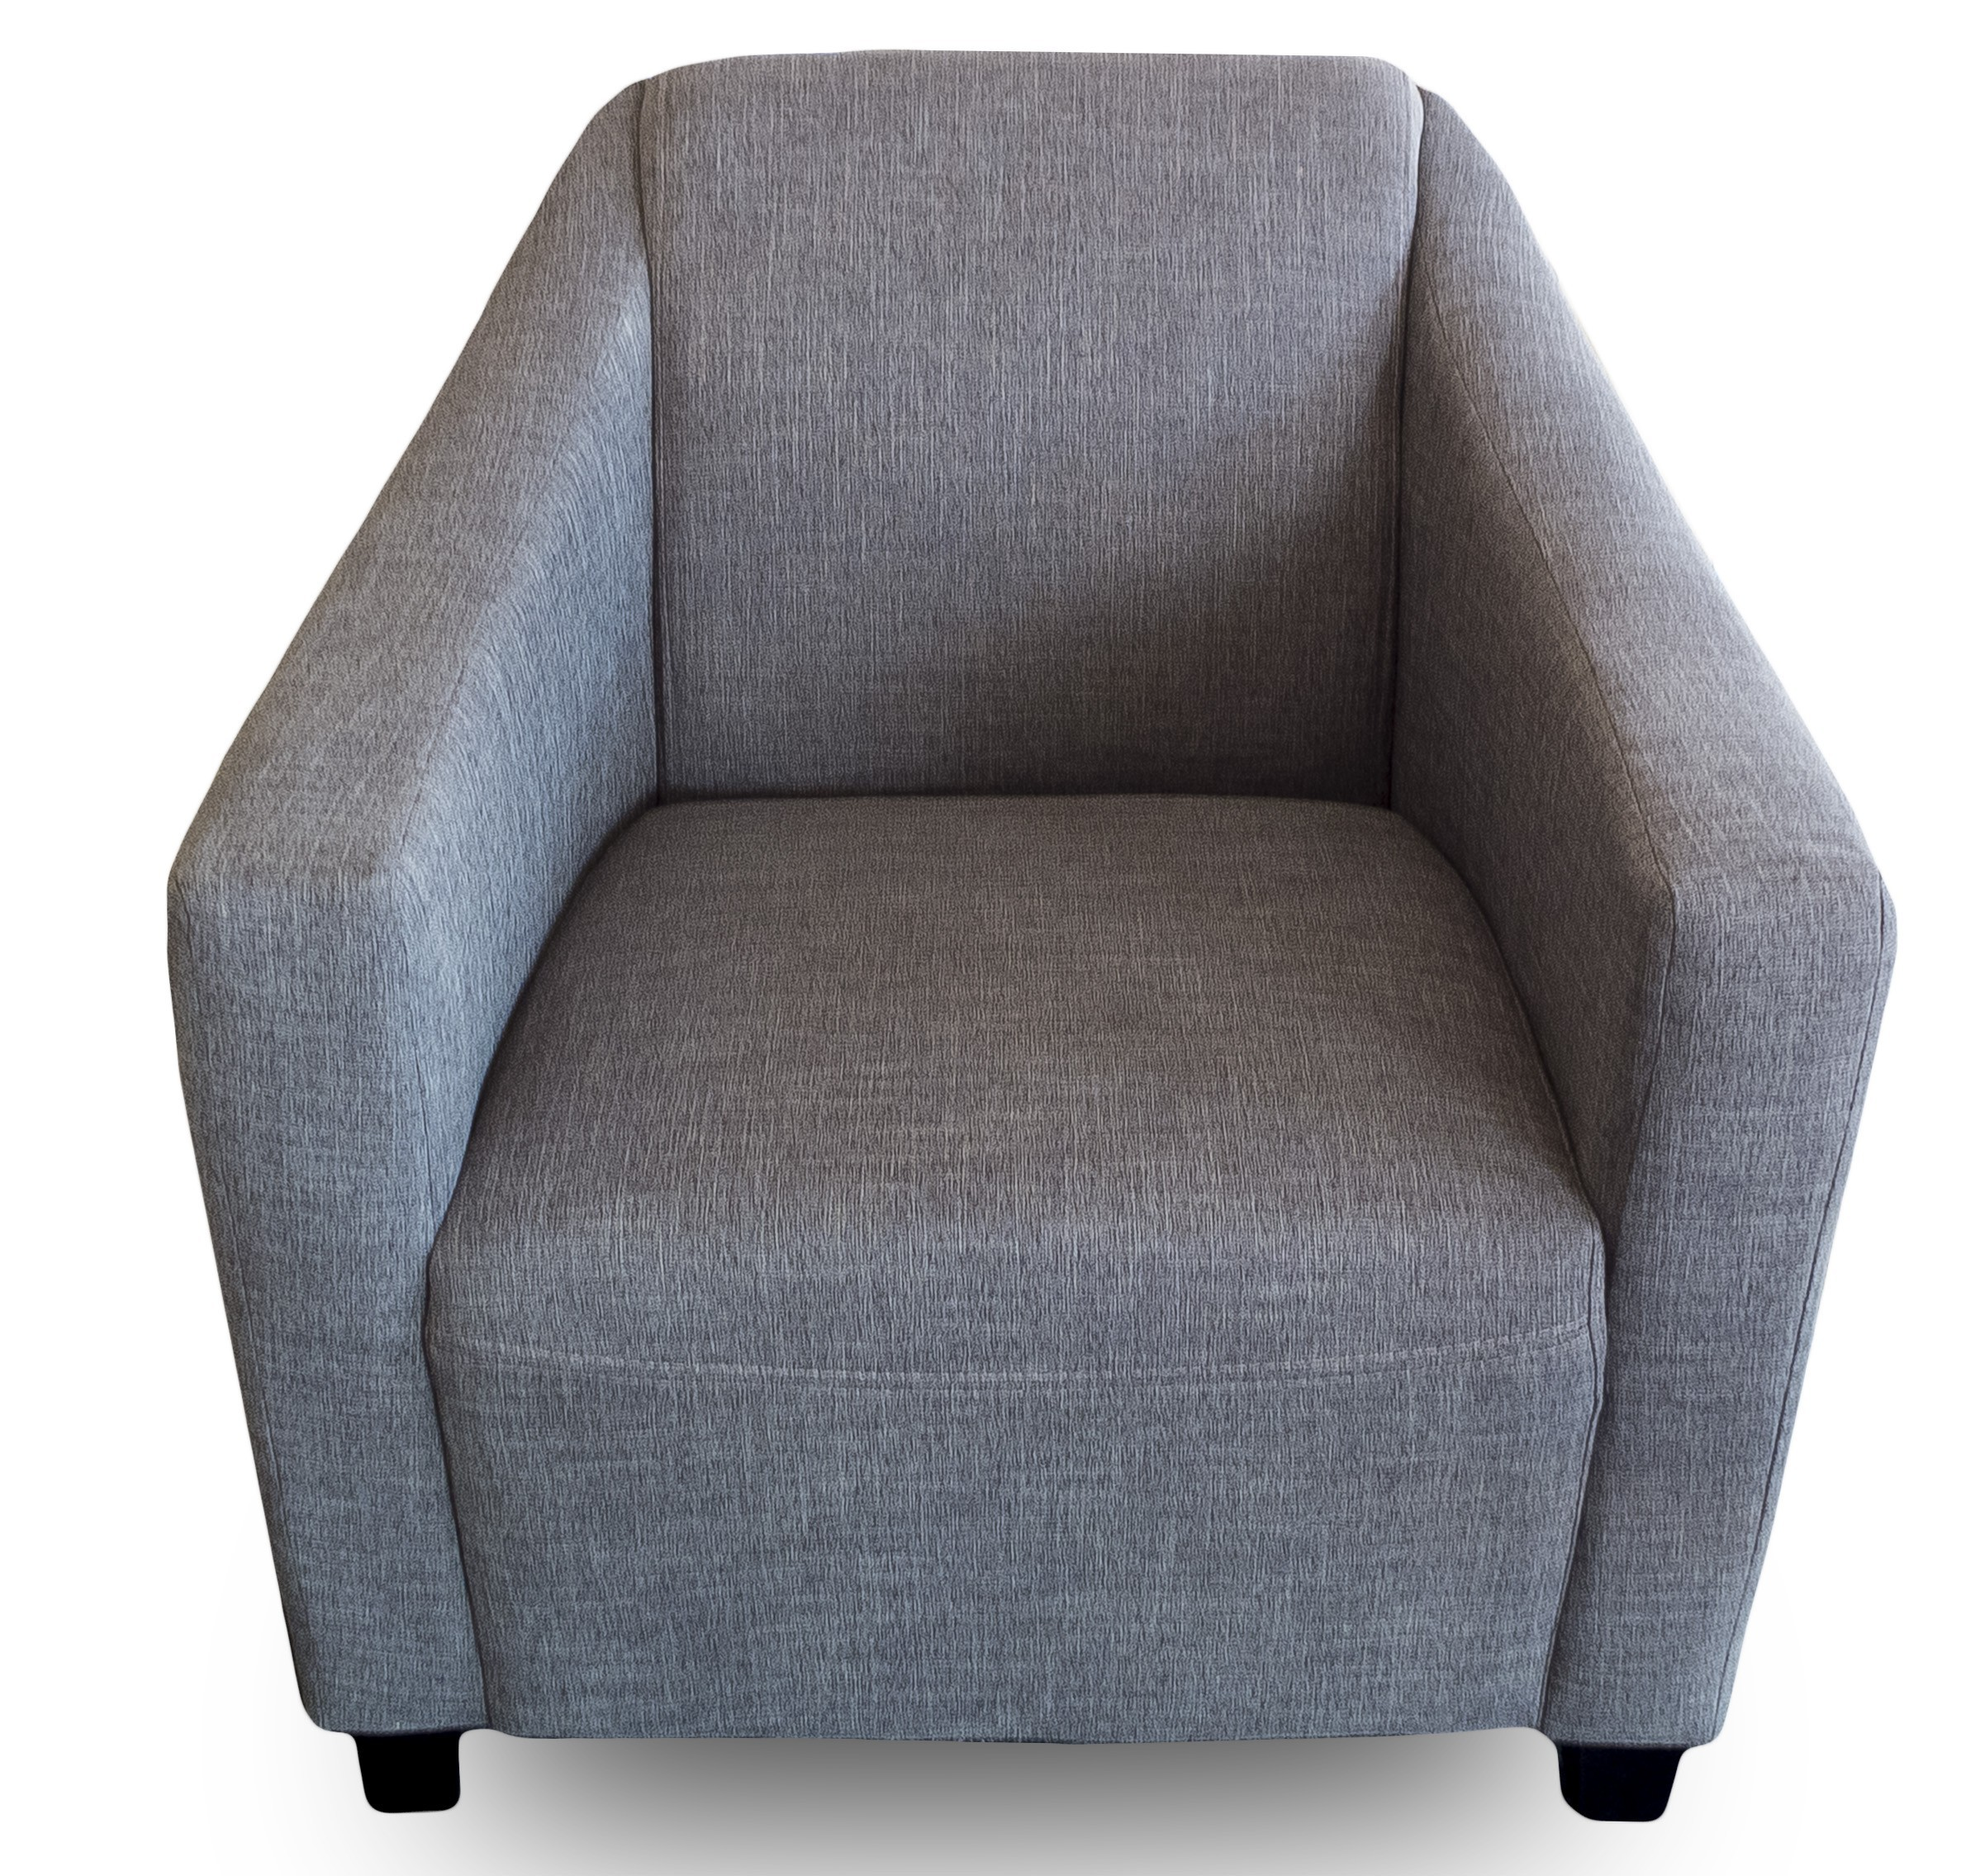 Daz Relax Fabric Arm Chair In Grey Colour